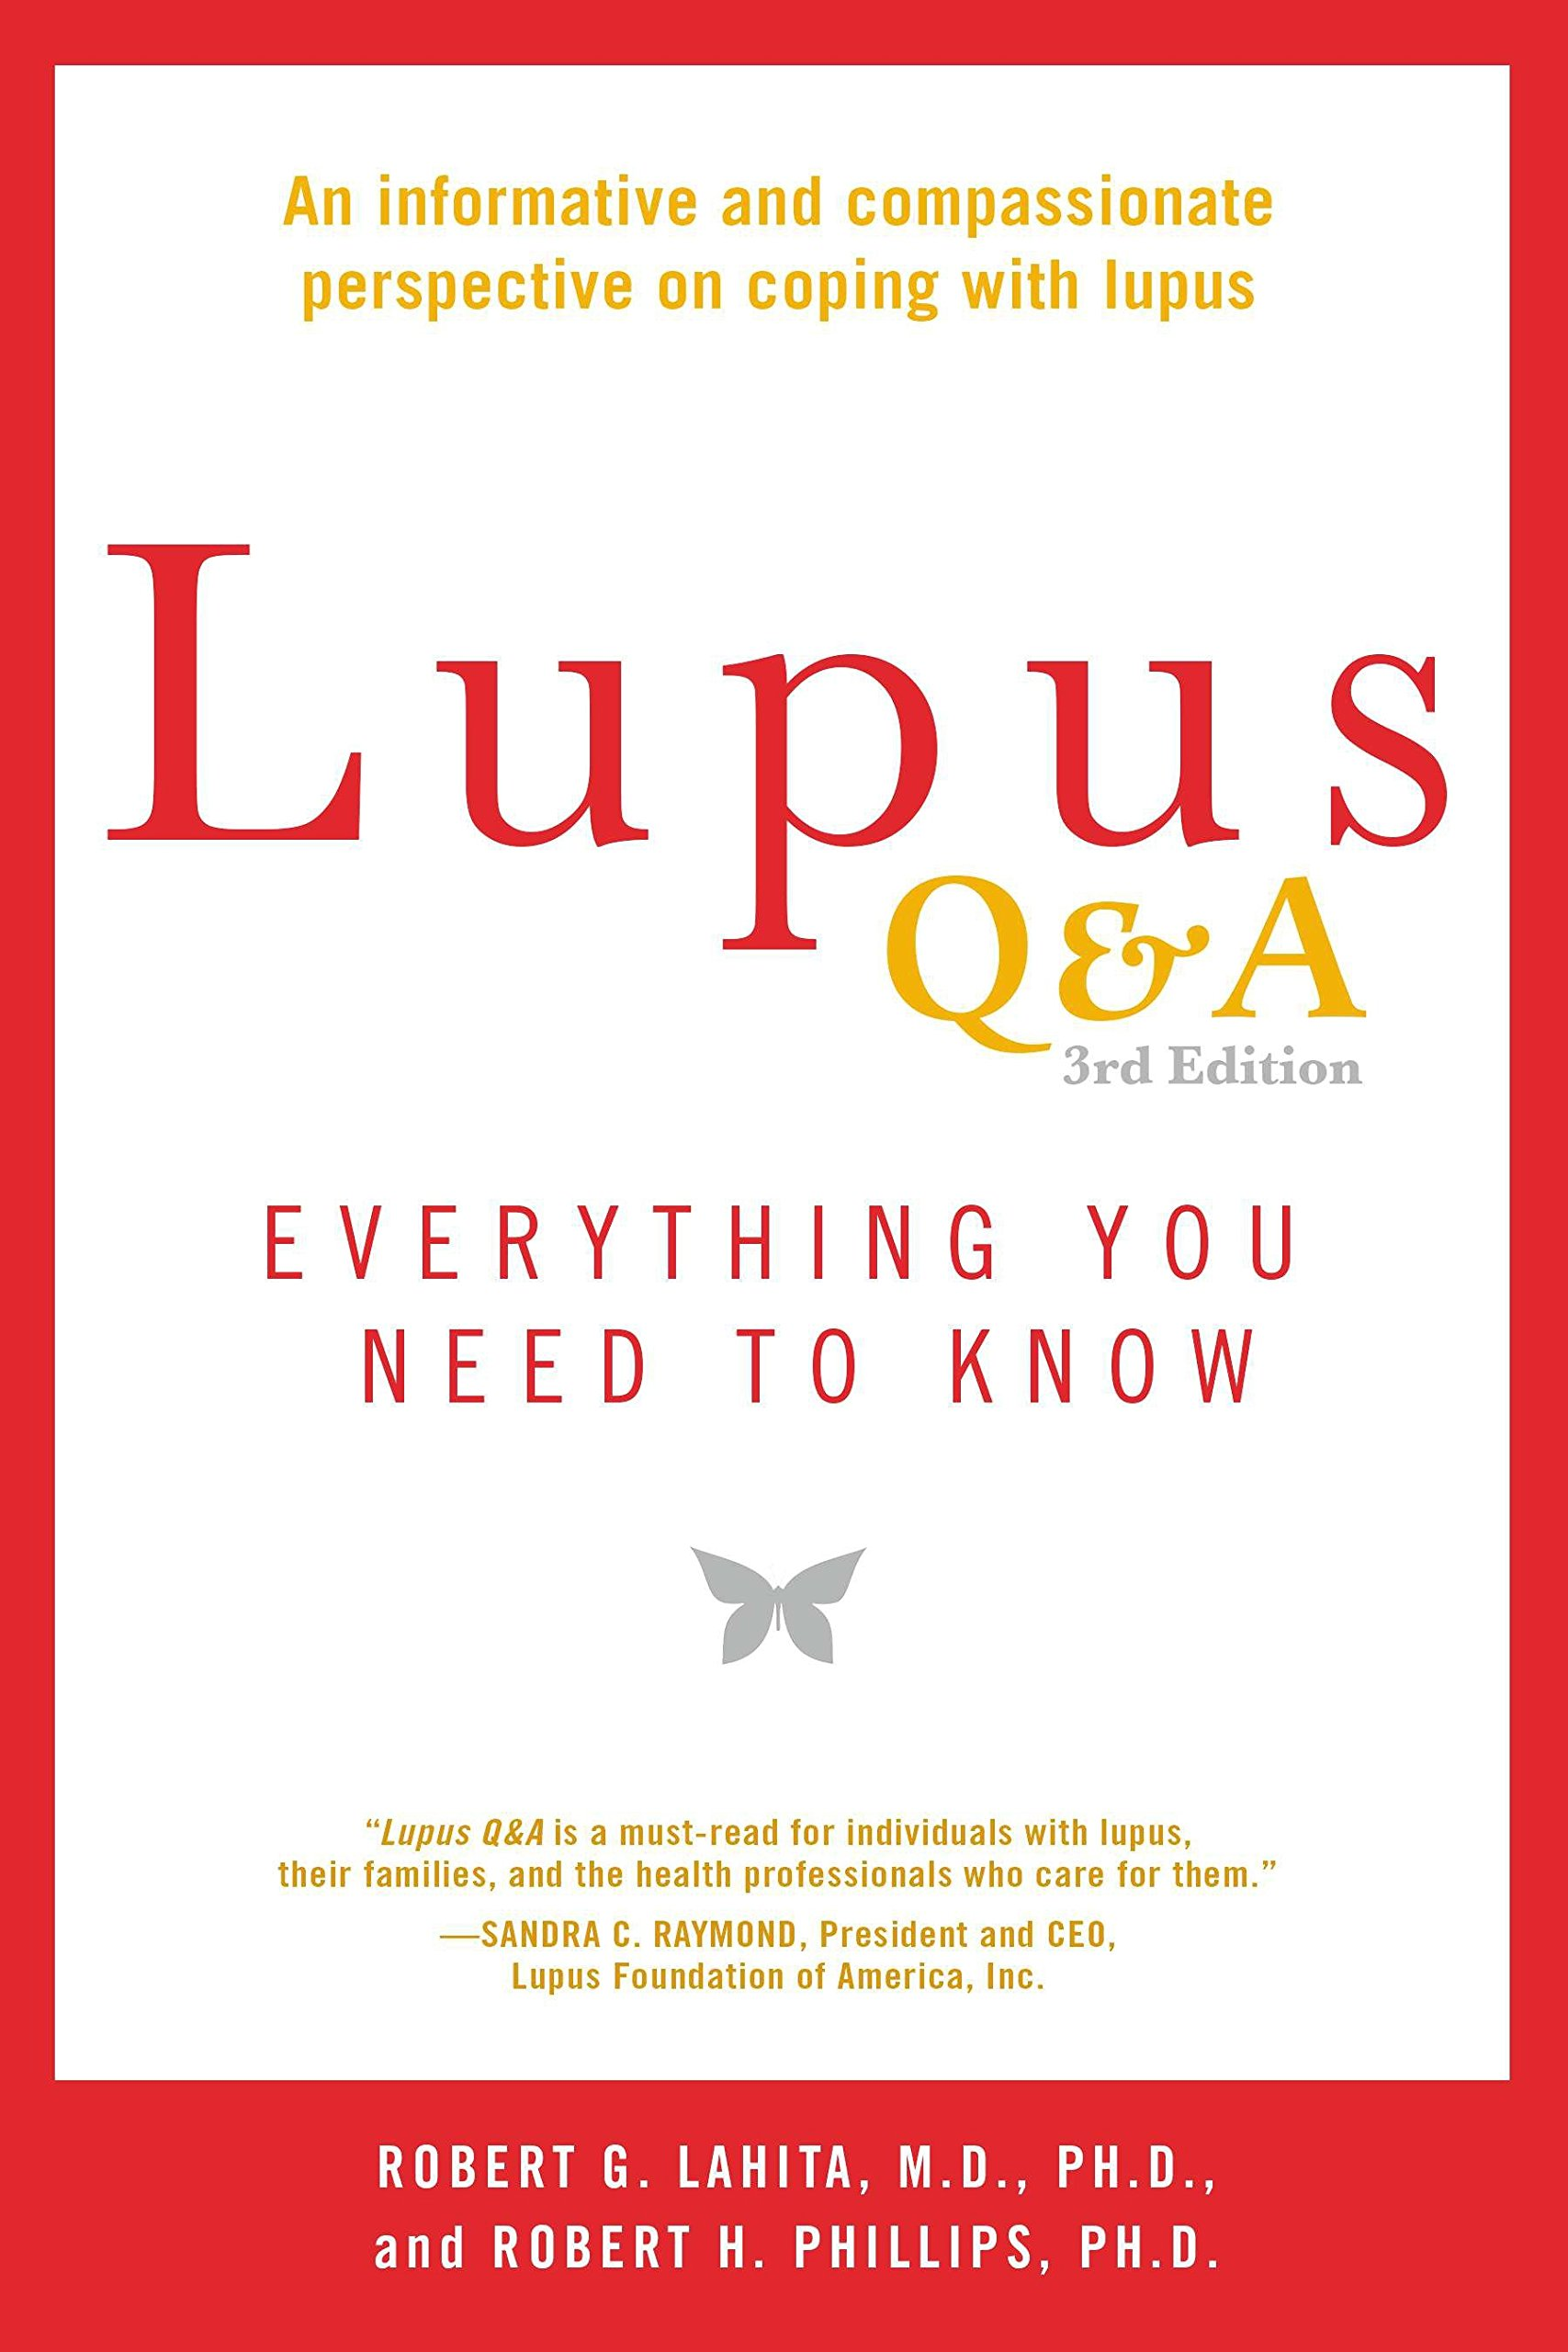 Lupus Q& A Revised and Updated, 3rd edition: Everything You Need to Know Paperback – December 2, 2014 Robert G. Lahita Robert H. Phillips Avery 1583335455